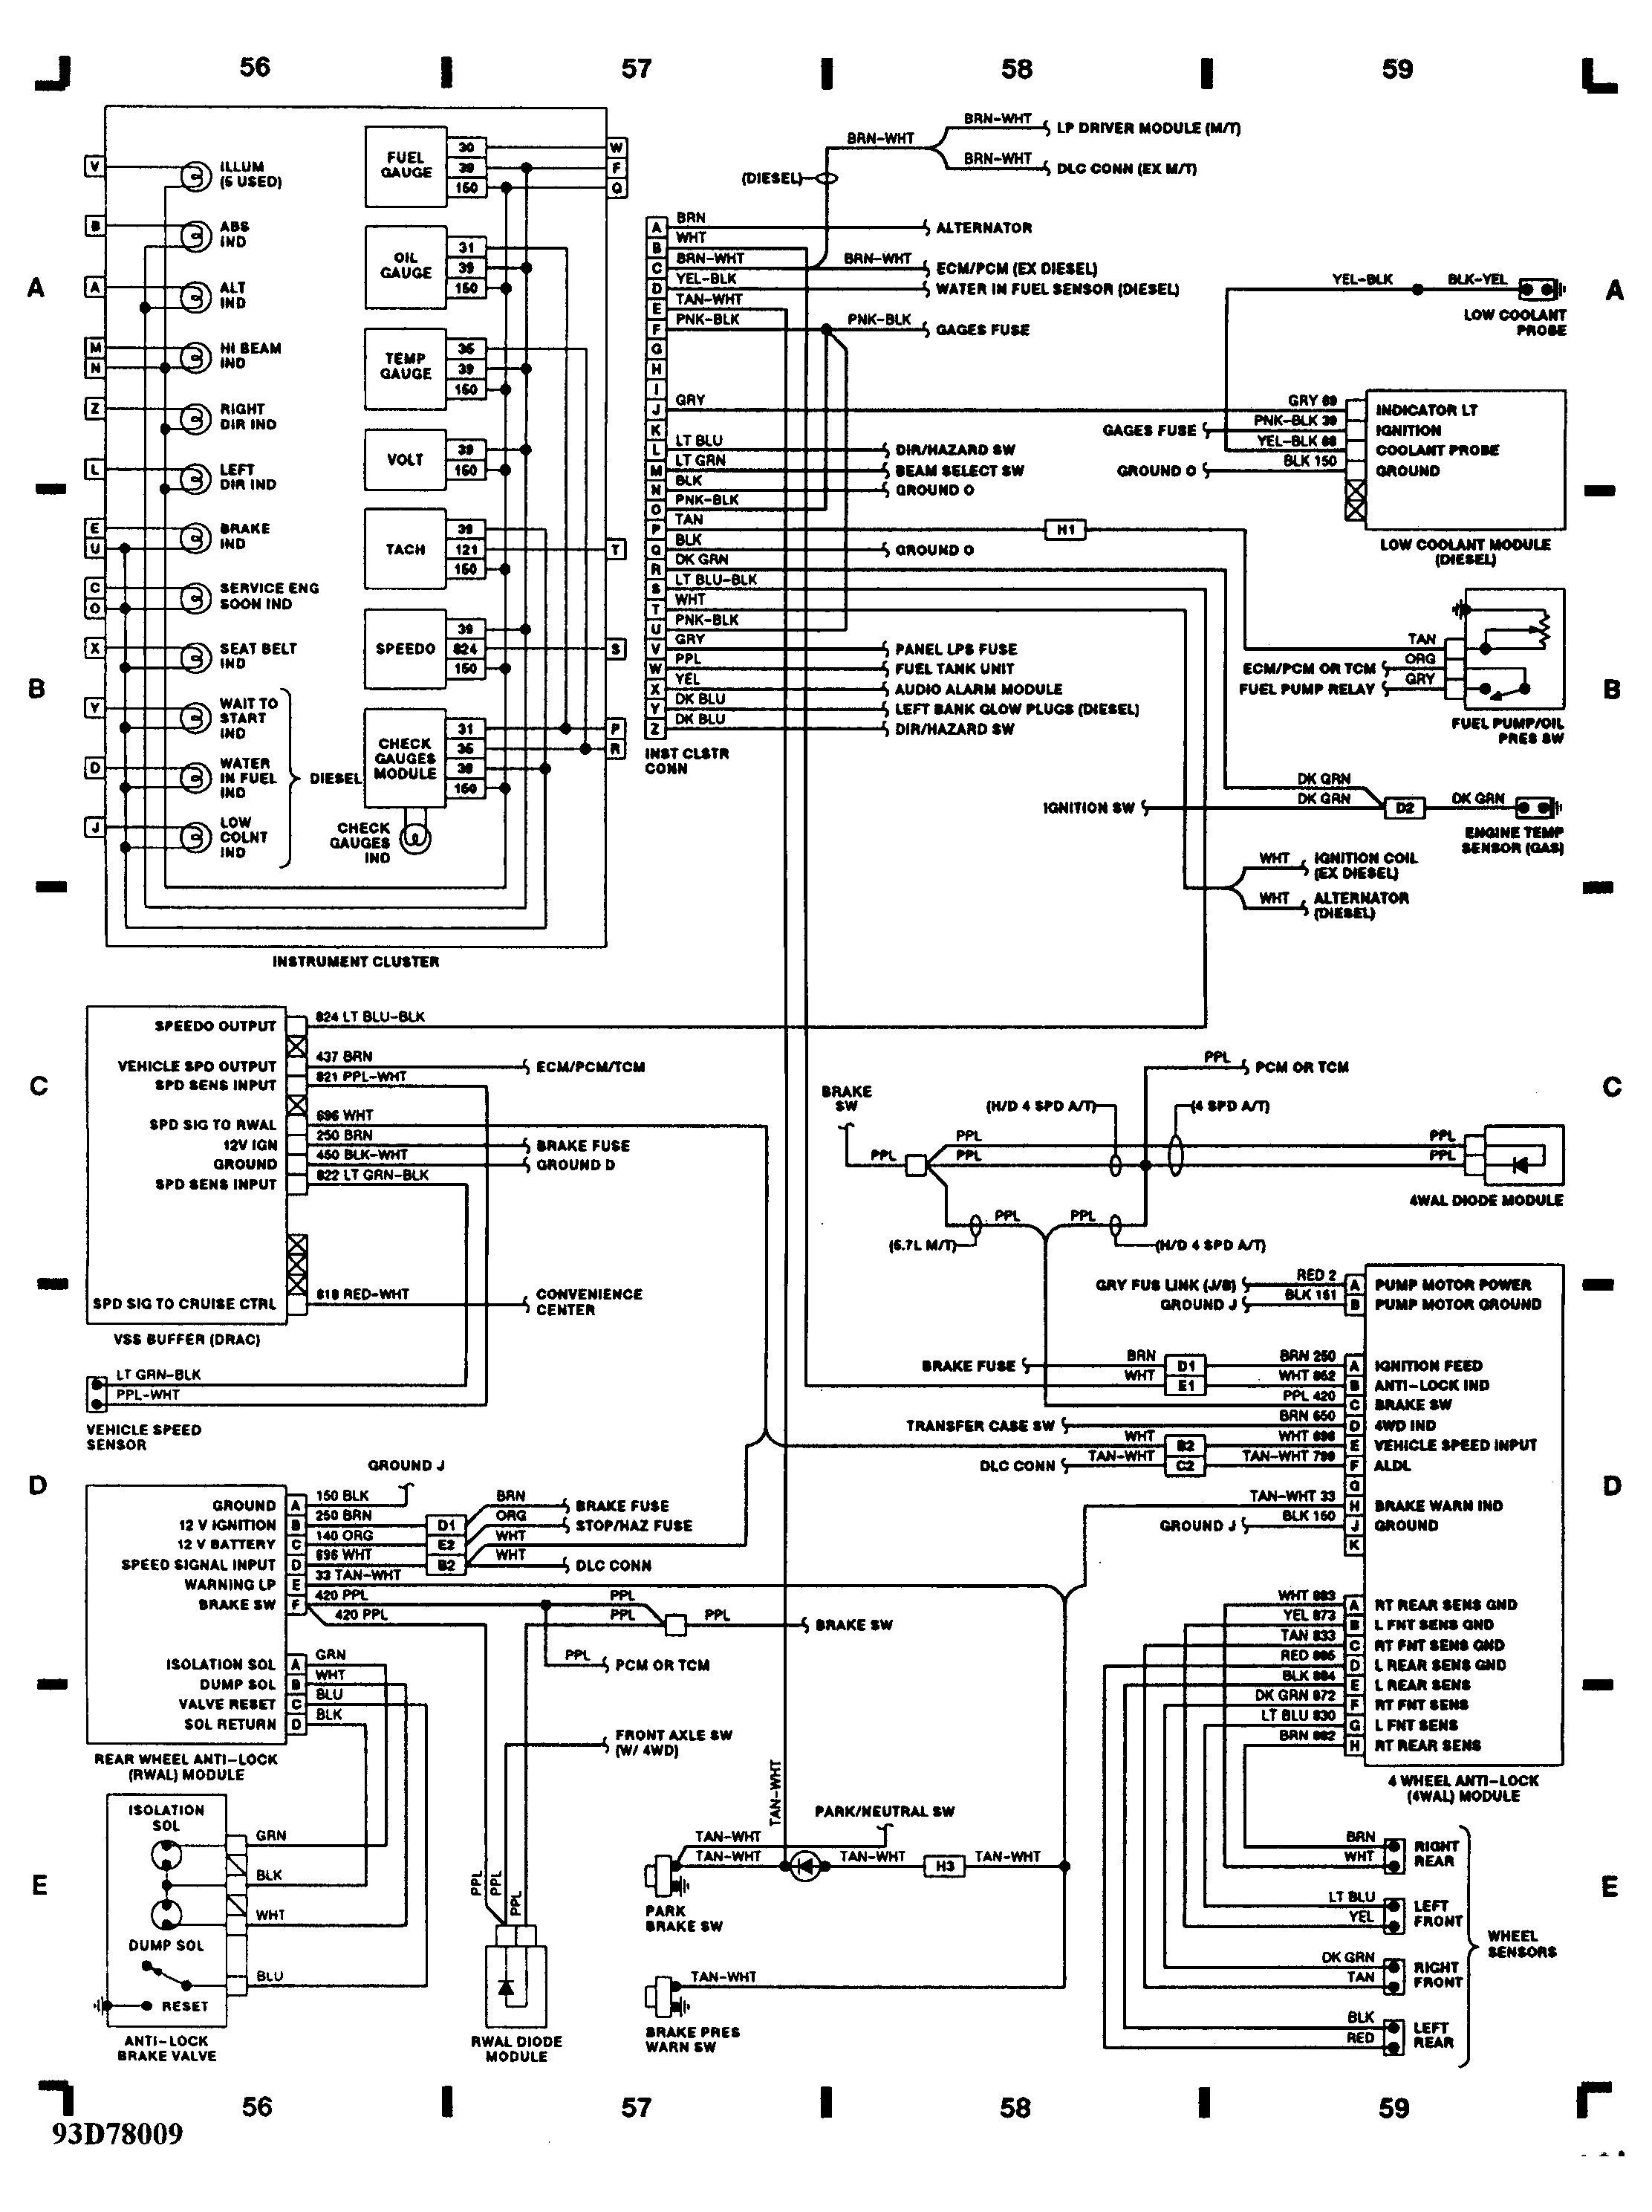 Standalone Wiring Harness Schematics - Wiring Diagram Post